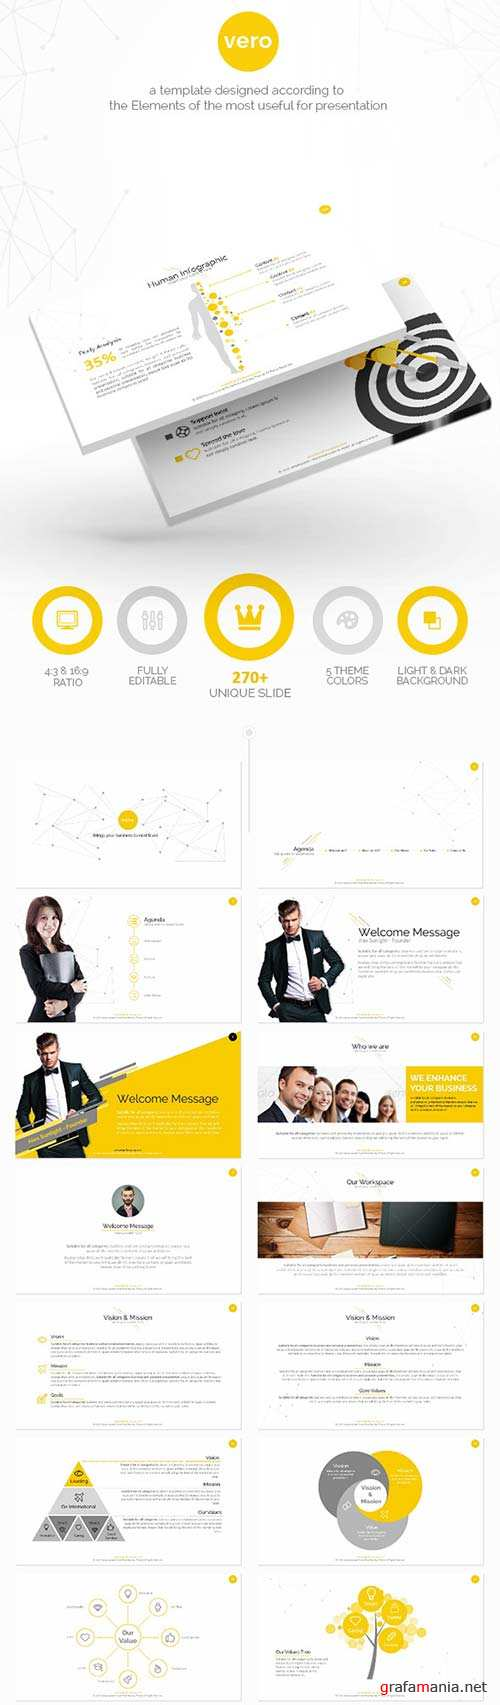 GraphicRiver Vero 1.2 - Connecting Your business